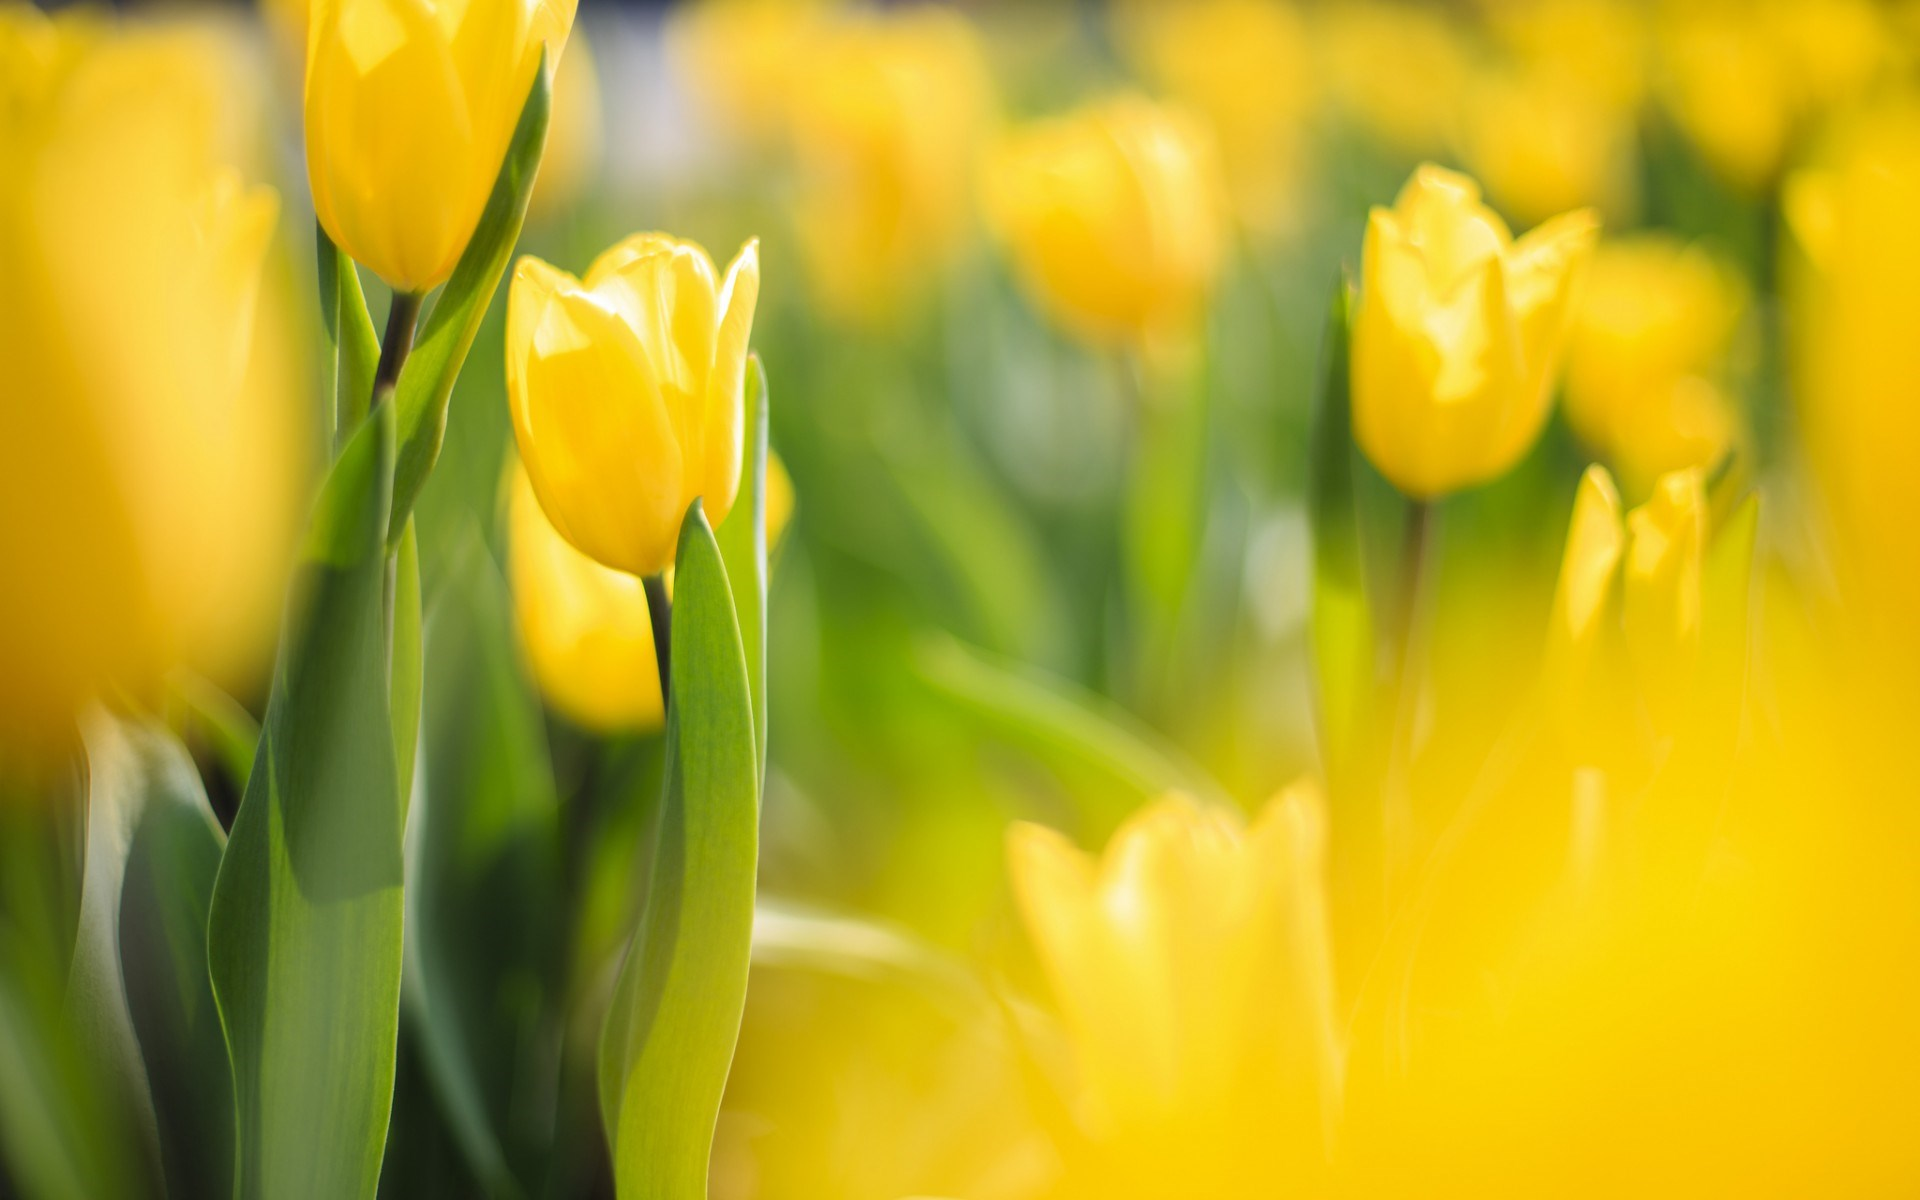 Spring Flowers Yellow Tulips Wallpapers 1920x1200 178469